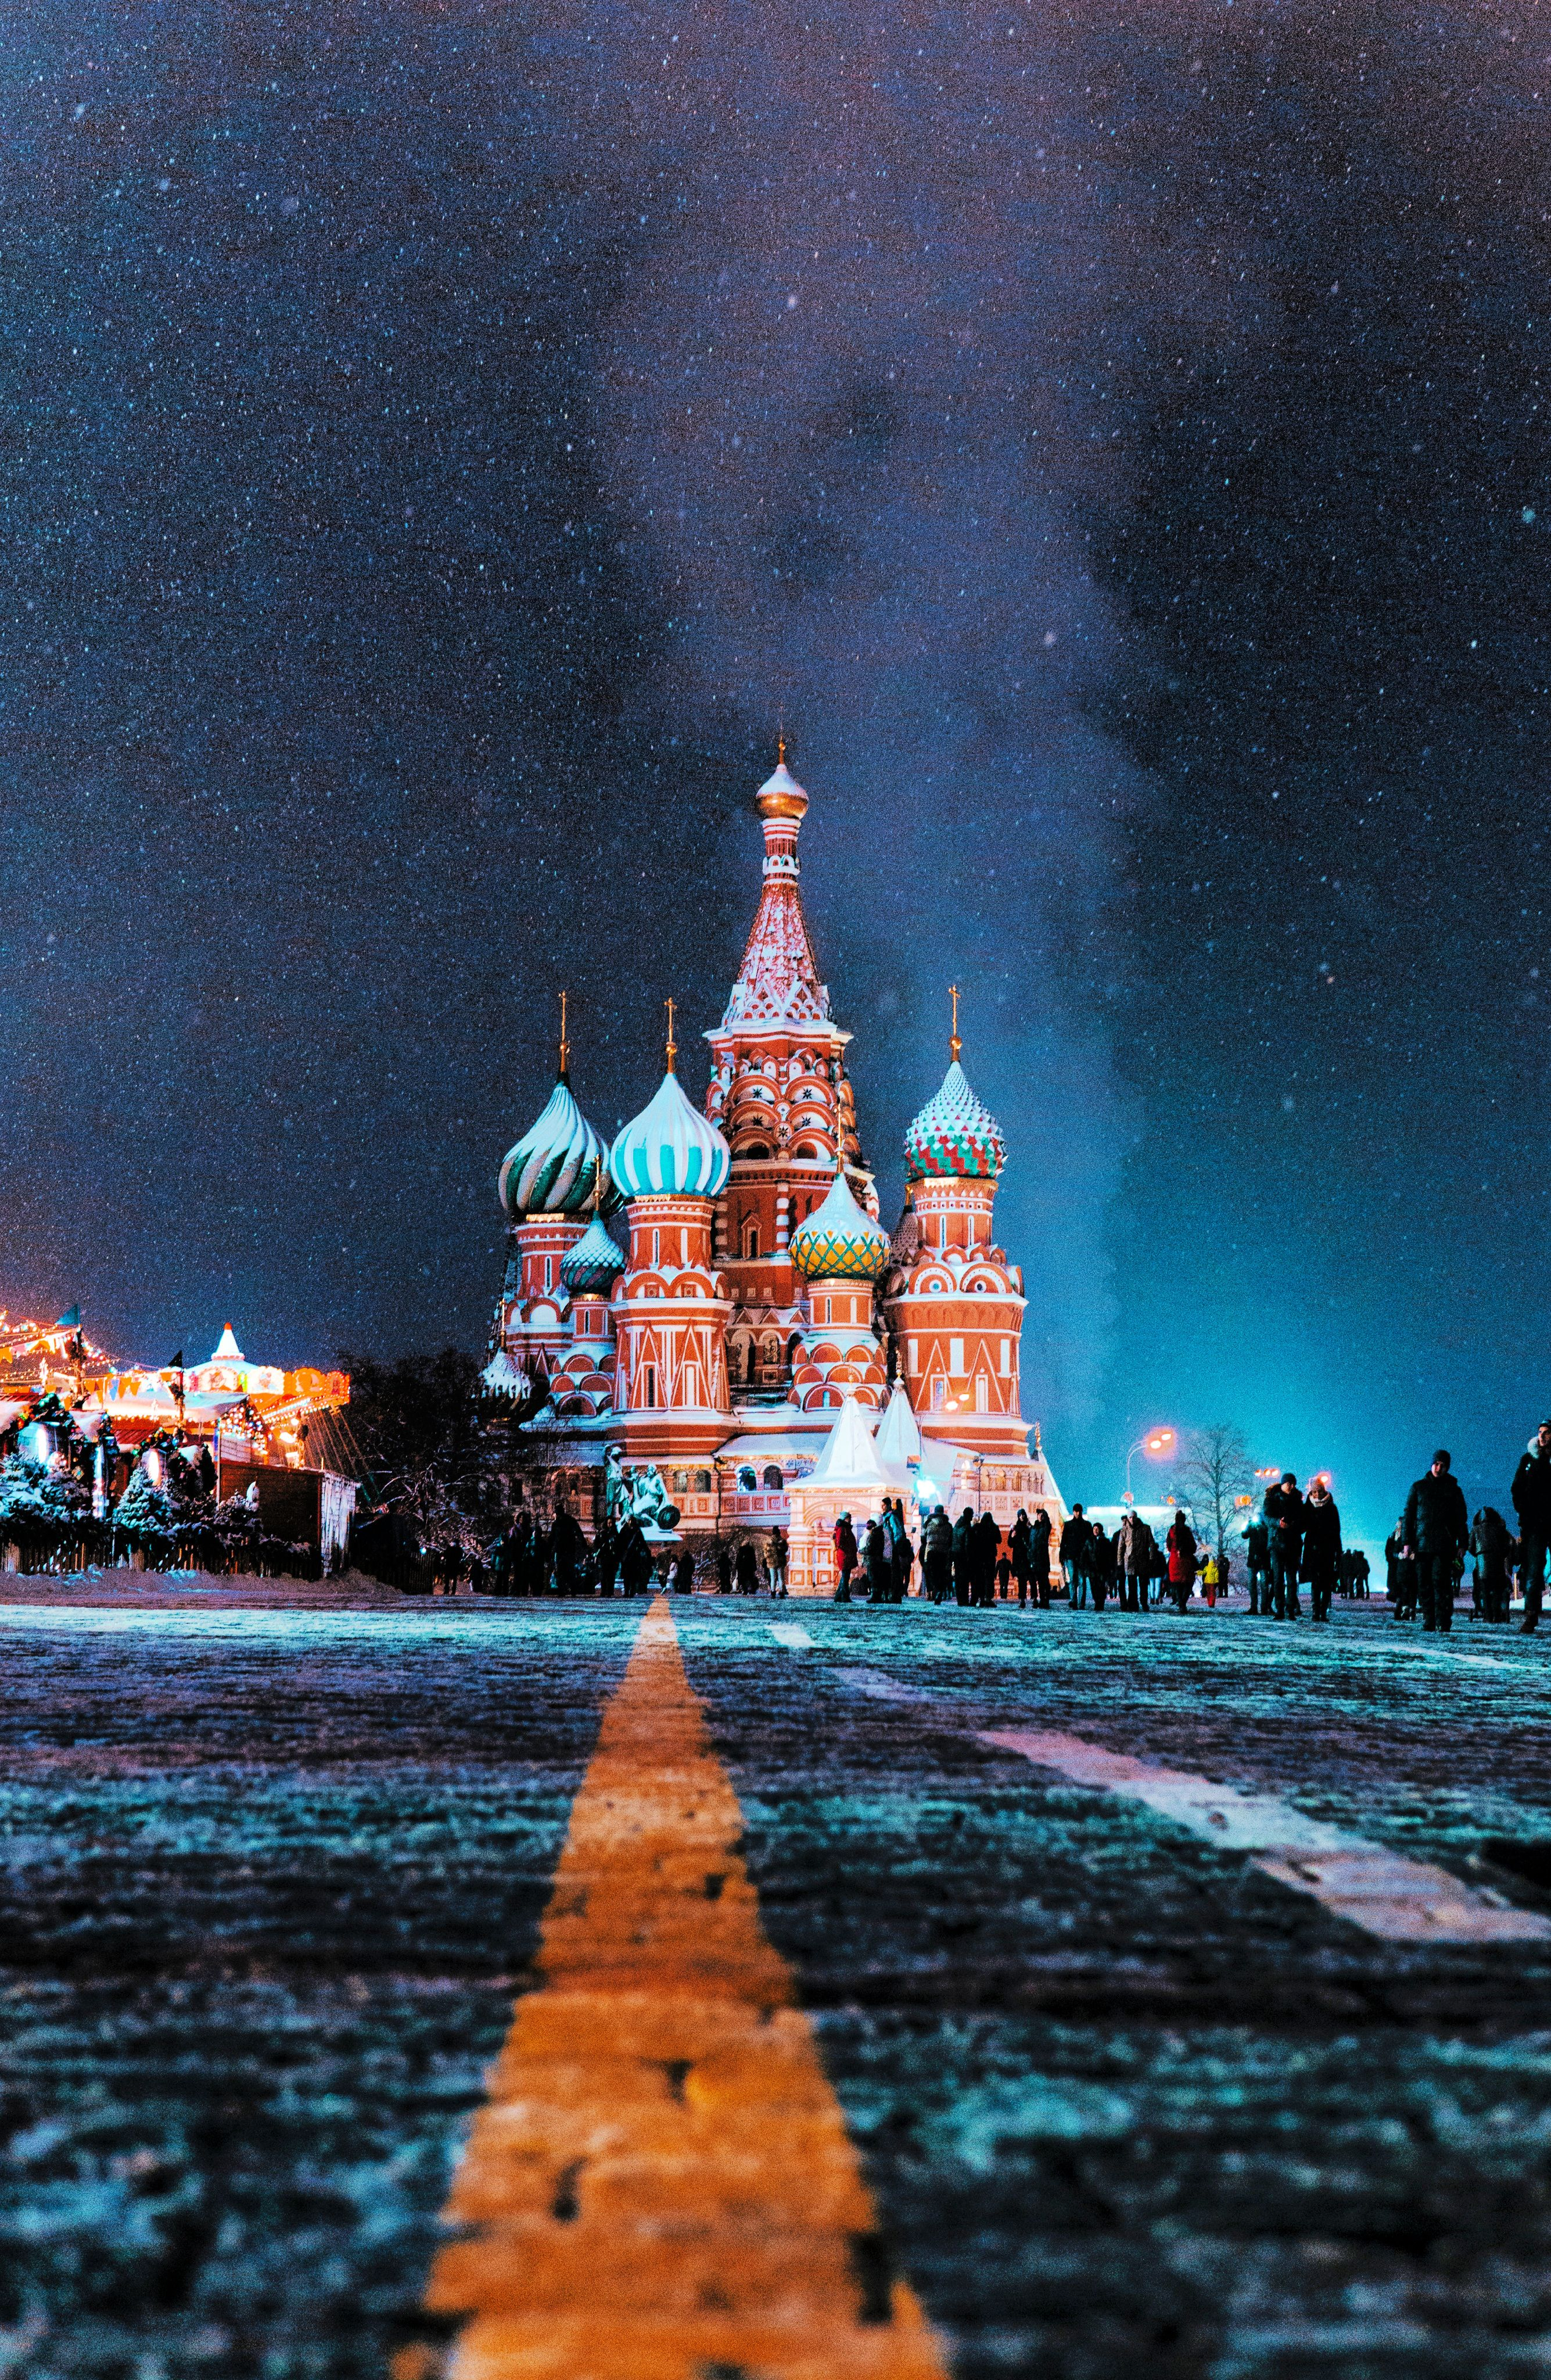 Going to Moscow Russia and want a few tips on where to see the best Russian architecture, Russian cathedrals, and museums? We've got it for you here so that you can explore Moscow like a local! #Moscow #Moscow2018 #MoscowRussia #RussianArchitecture #RussianCathedrals #Saint Basil'sCathedral #Cathedrals #Cathedral #MoscowTravel #RussiaTravel #MoscowTravelGuide #MoscowTips